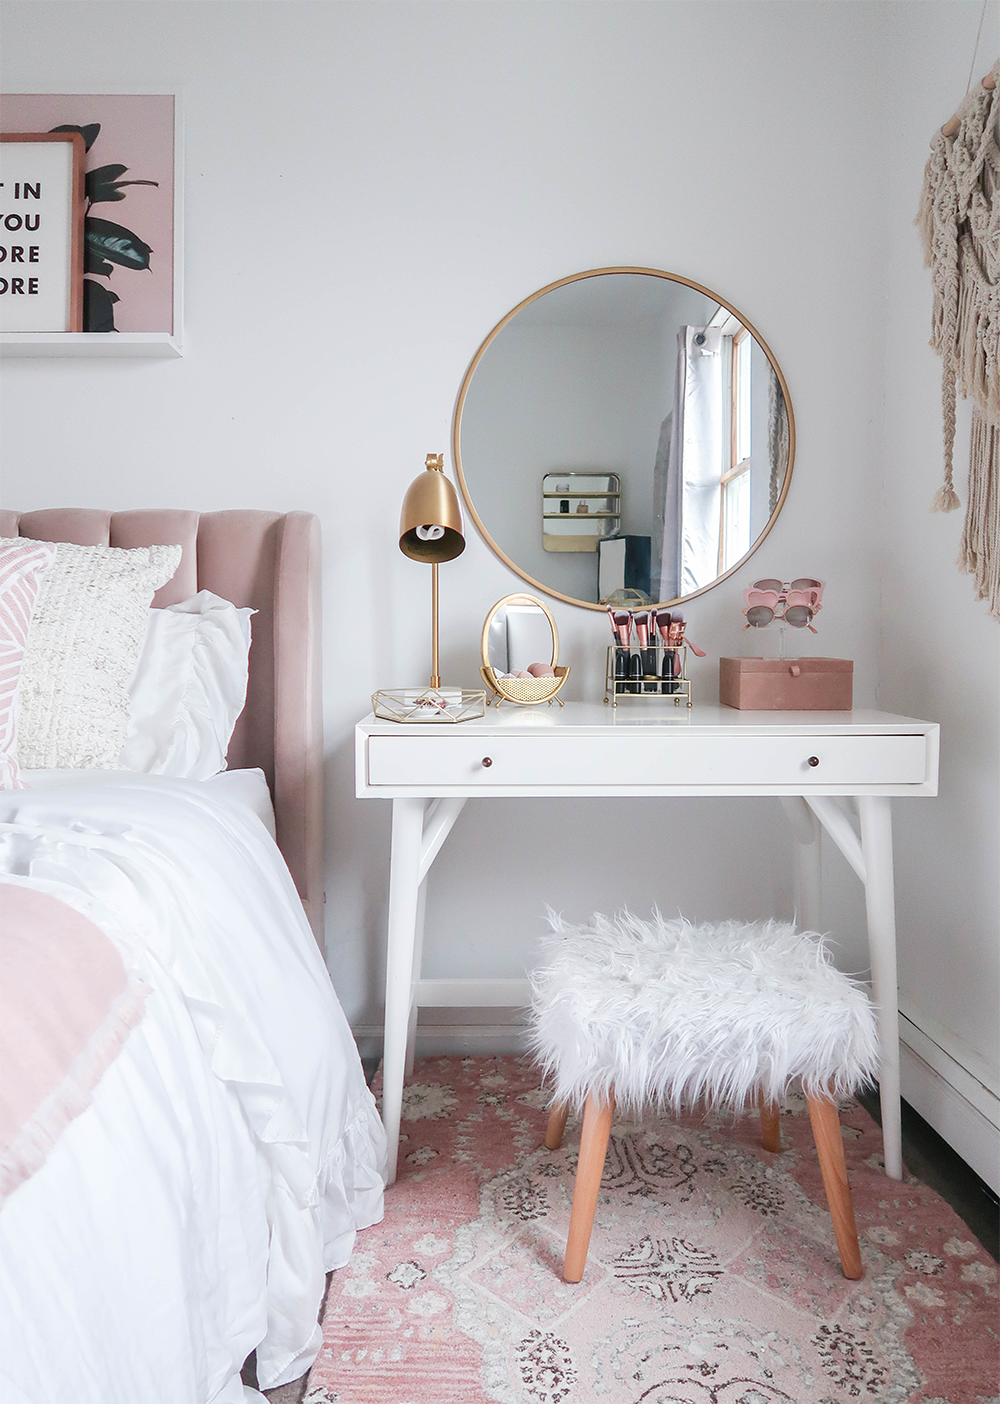 Styling A Vanity In A Small Space Teresa Caruso Small Bedroom Vanity Home Decor Bedroom Decor